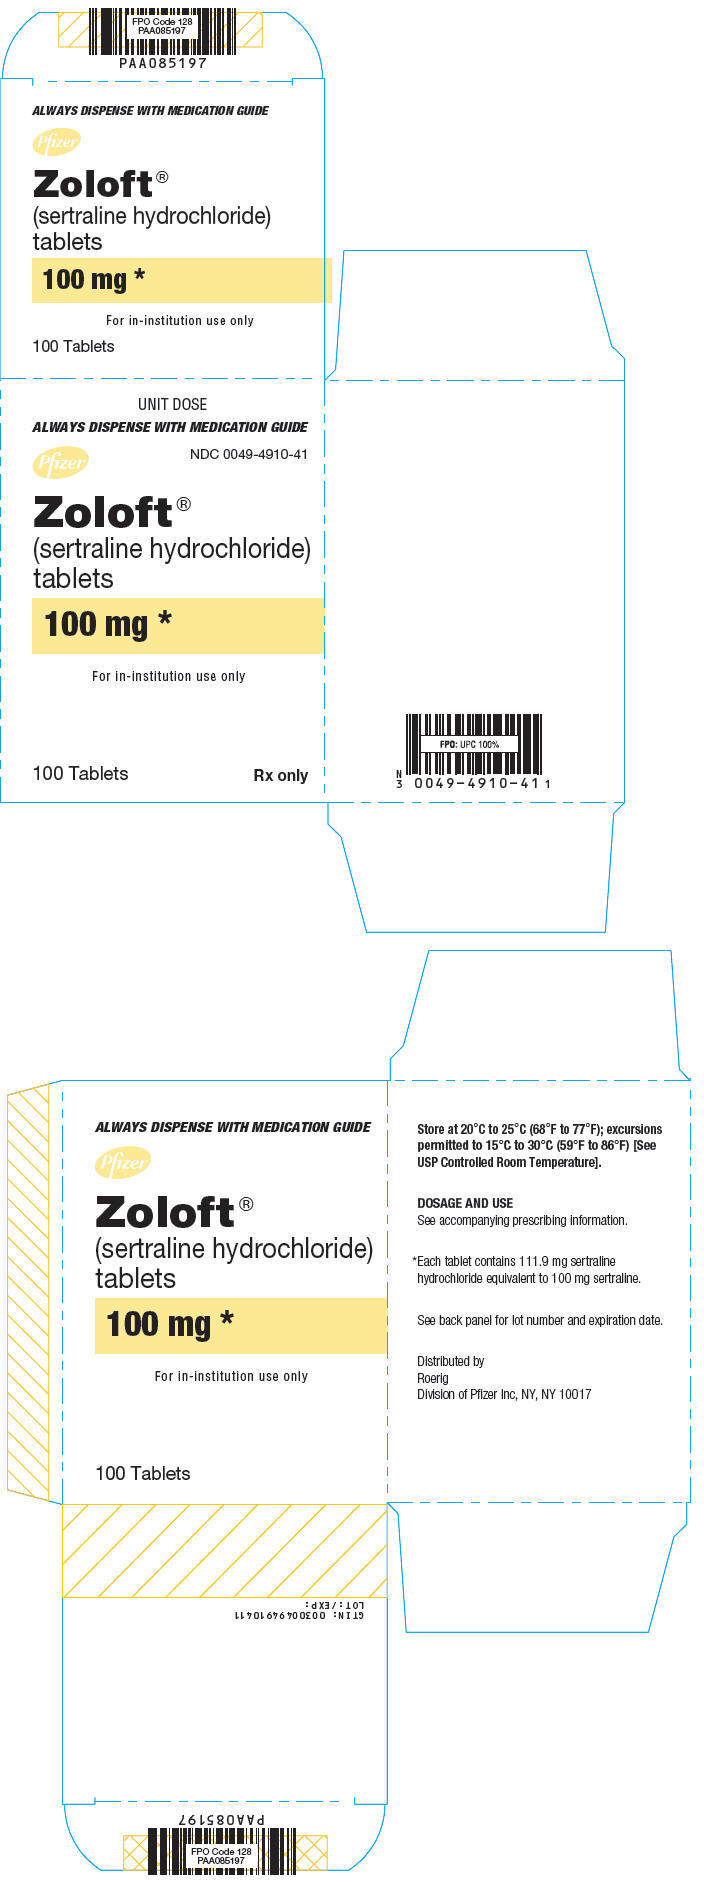 PRINCIPAL DISPLAY PANEL - 100 mg Tablet Blister Pack Carton